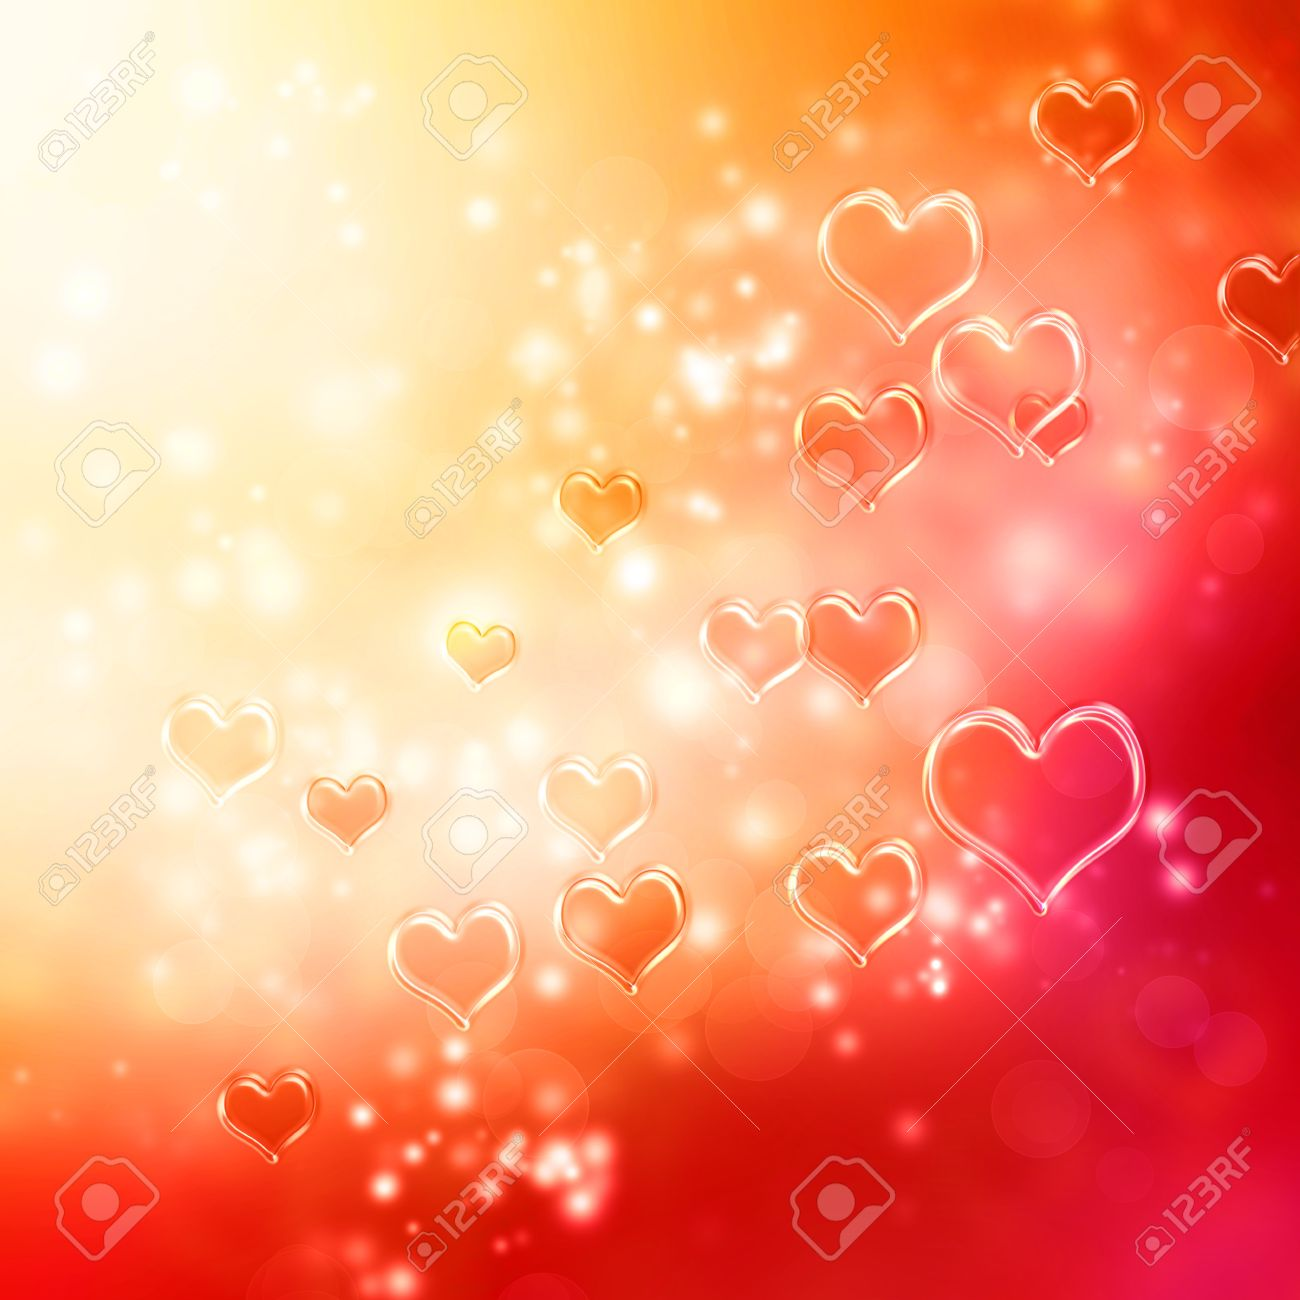 Clear shiny hearts background (red and orange) Stock Photo - 17305637